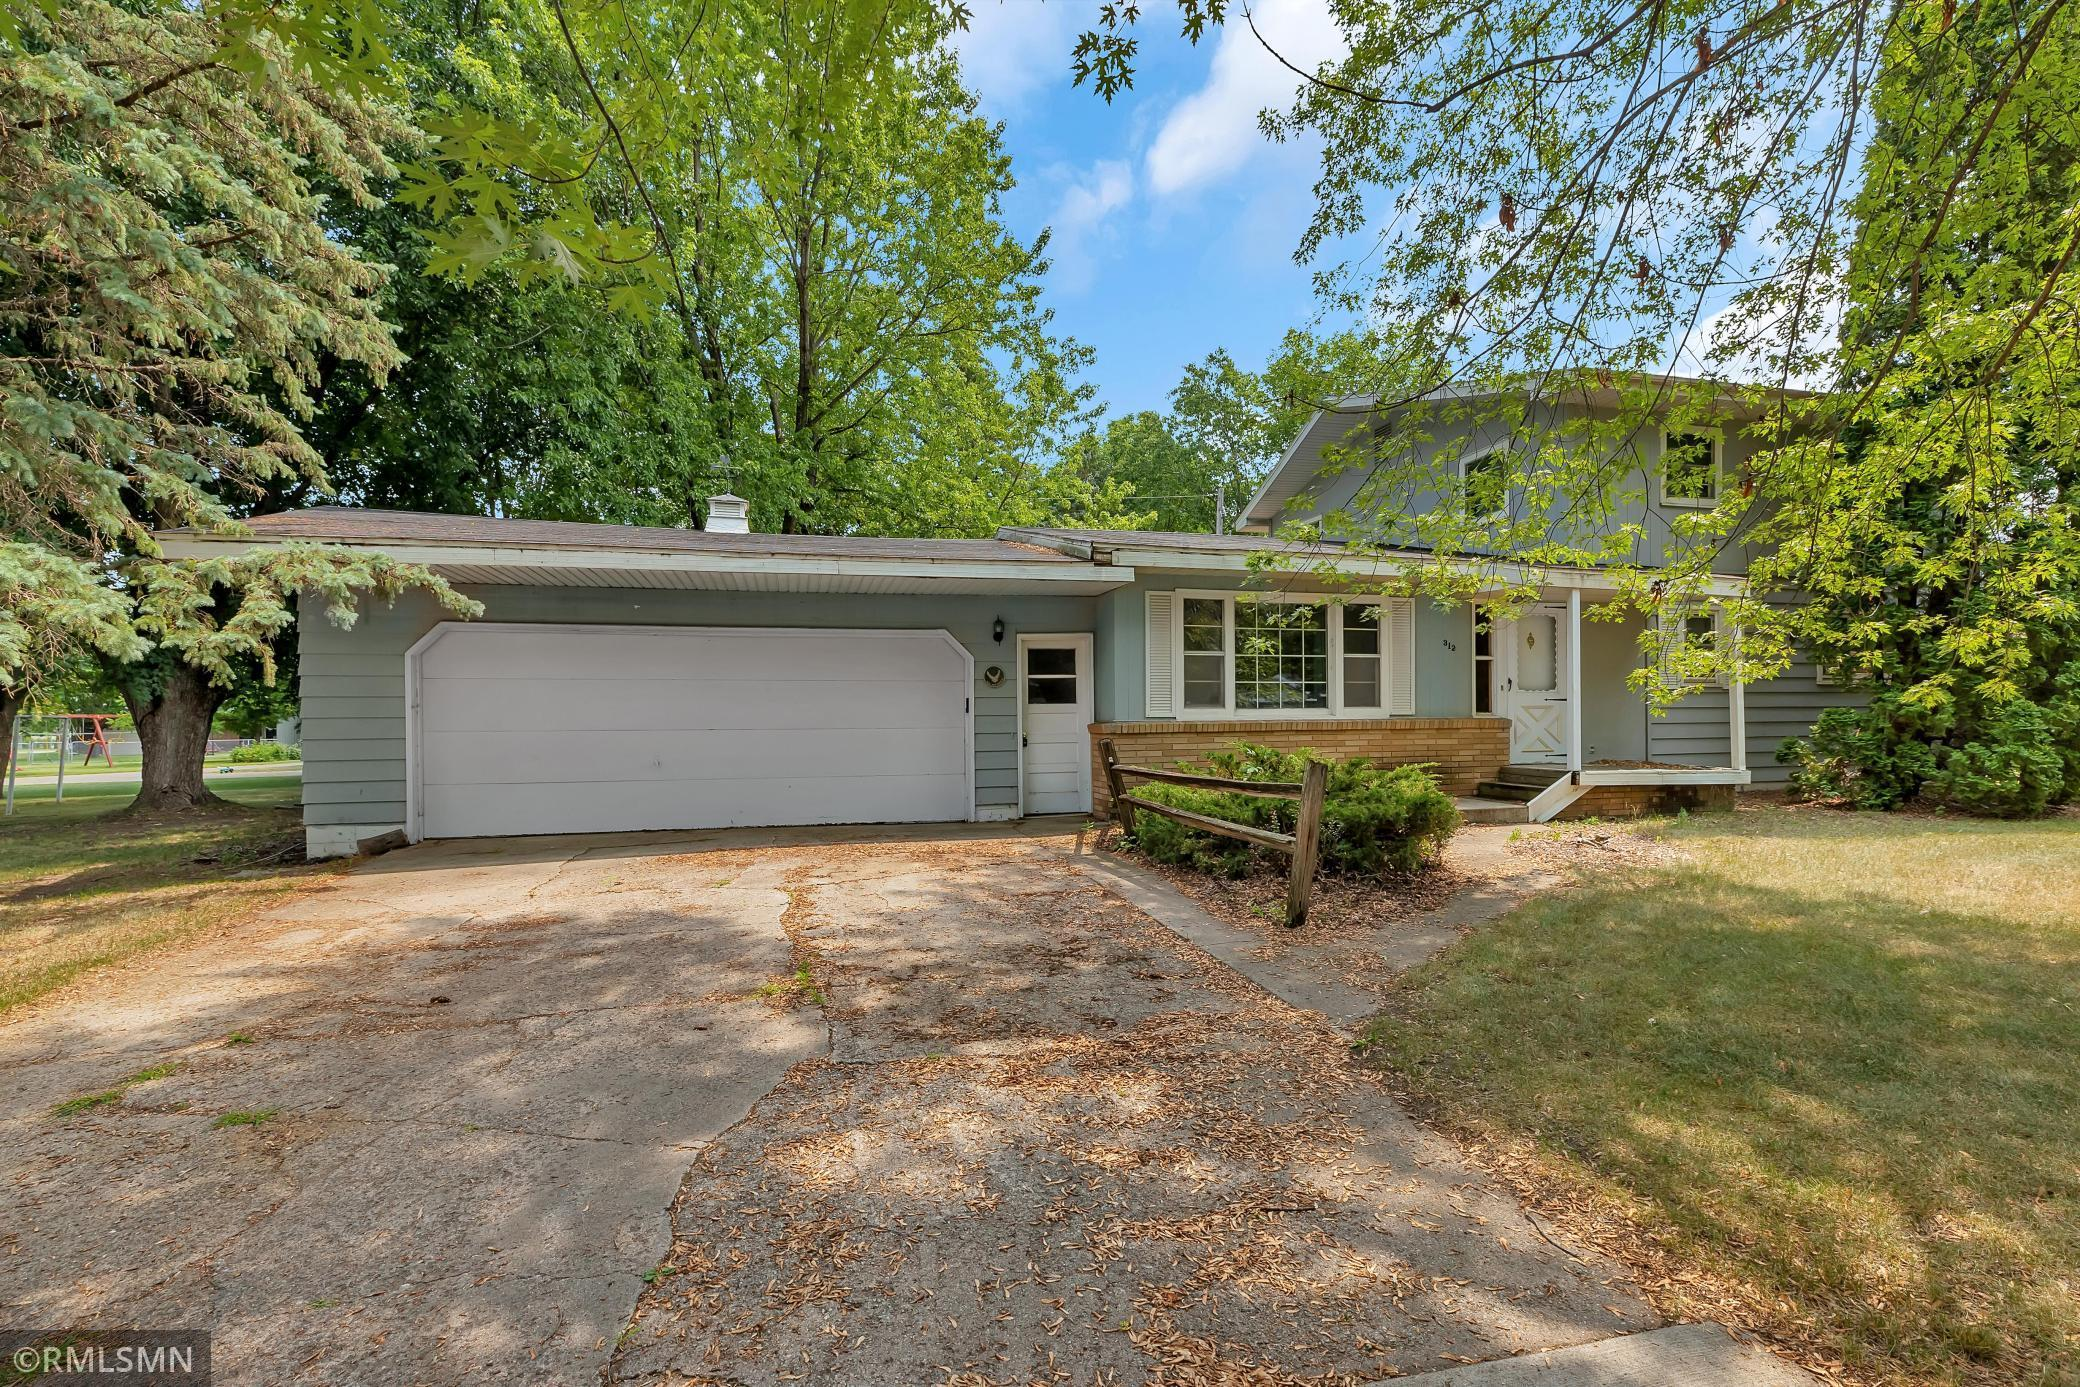 Handyman special, many big ticket items already updated. Furnace and A/C in 2019, water heater in 2017, roof 7 yrs old.  2 main floor bedrooms including one with master bath. 2 large upper level bedrooms. Lower level has large family room including wood burning fireplace and potential 3/4 bath. Nice quiet neighborhood on cul-de-sac very near Rocori trail and Cold Spring Baseball Park